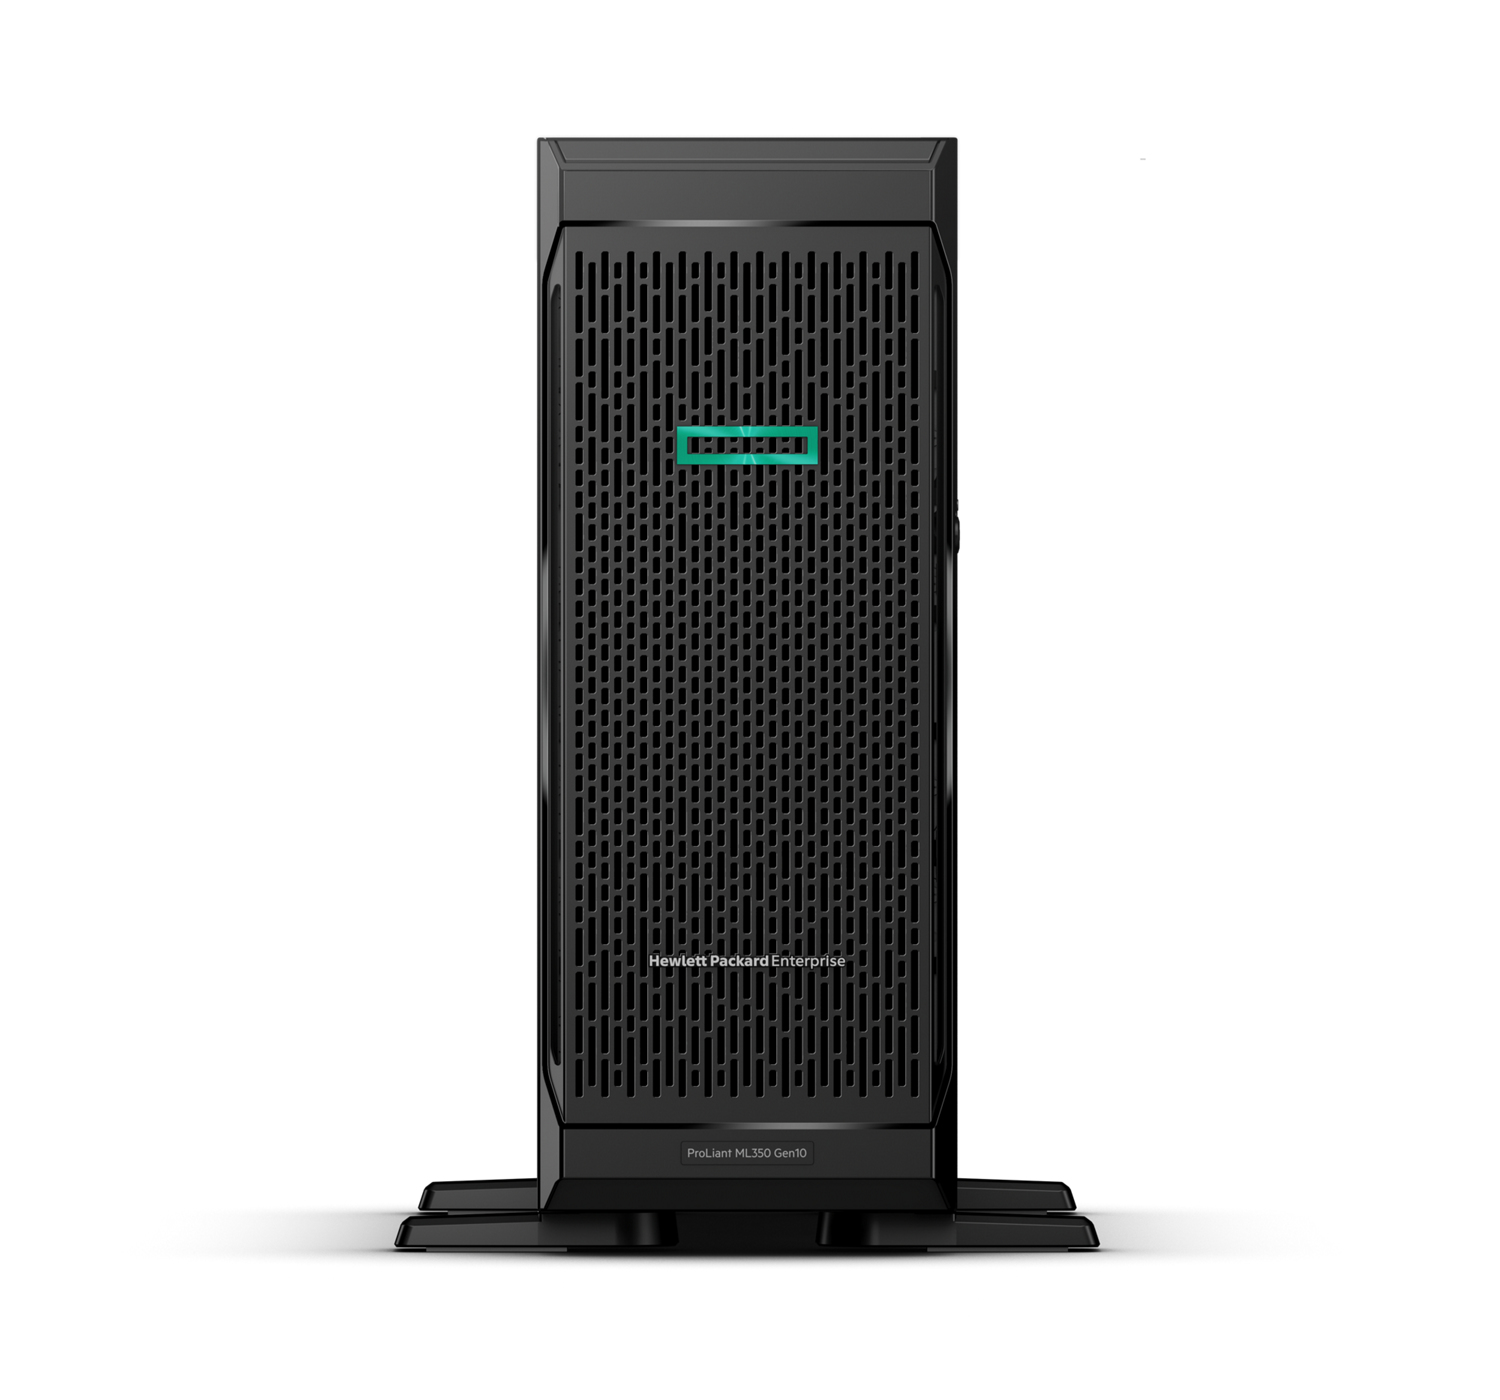 Hewlett Packard Enterprise ProLiant ML350 Gen10 server Intel Xeon Silver 2.1 GHz 16 GB DDR4-SDRAM 48 TB Tower (4U) 800 W